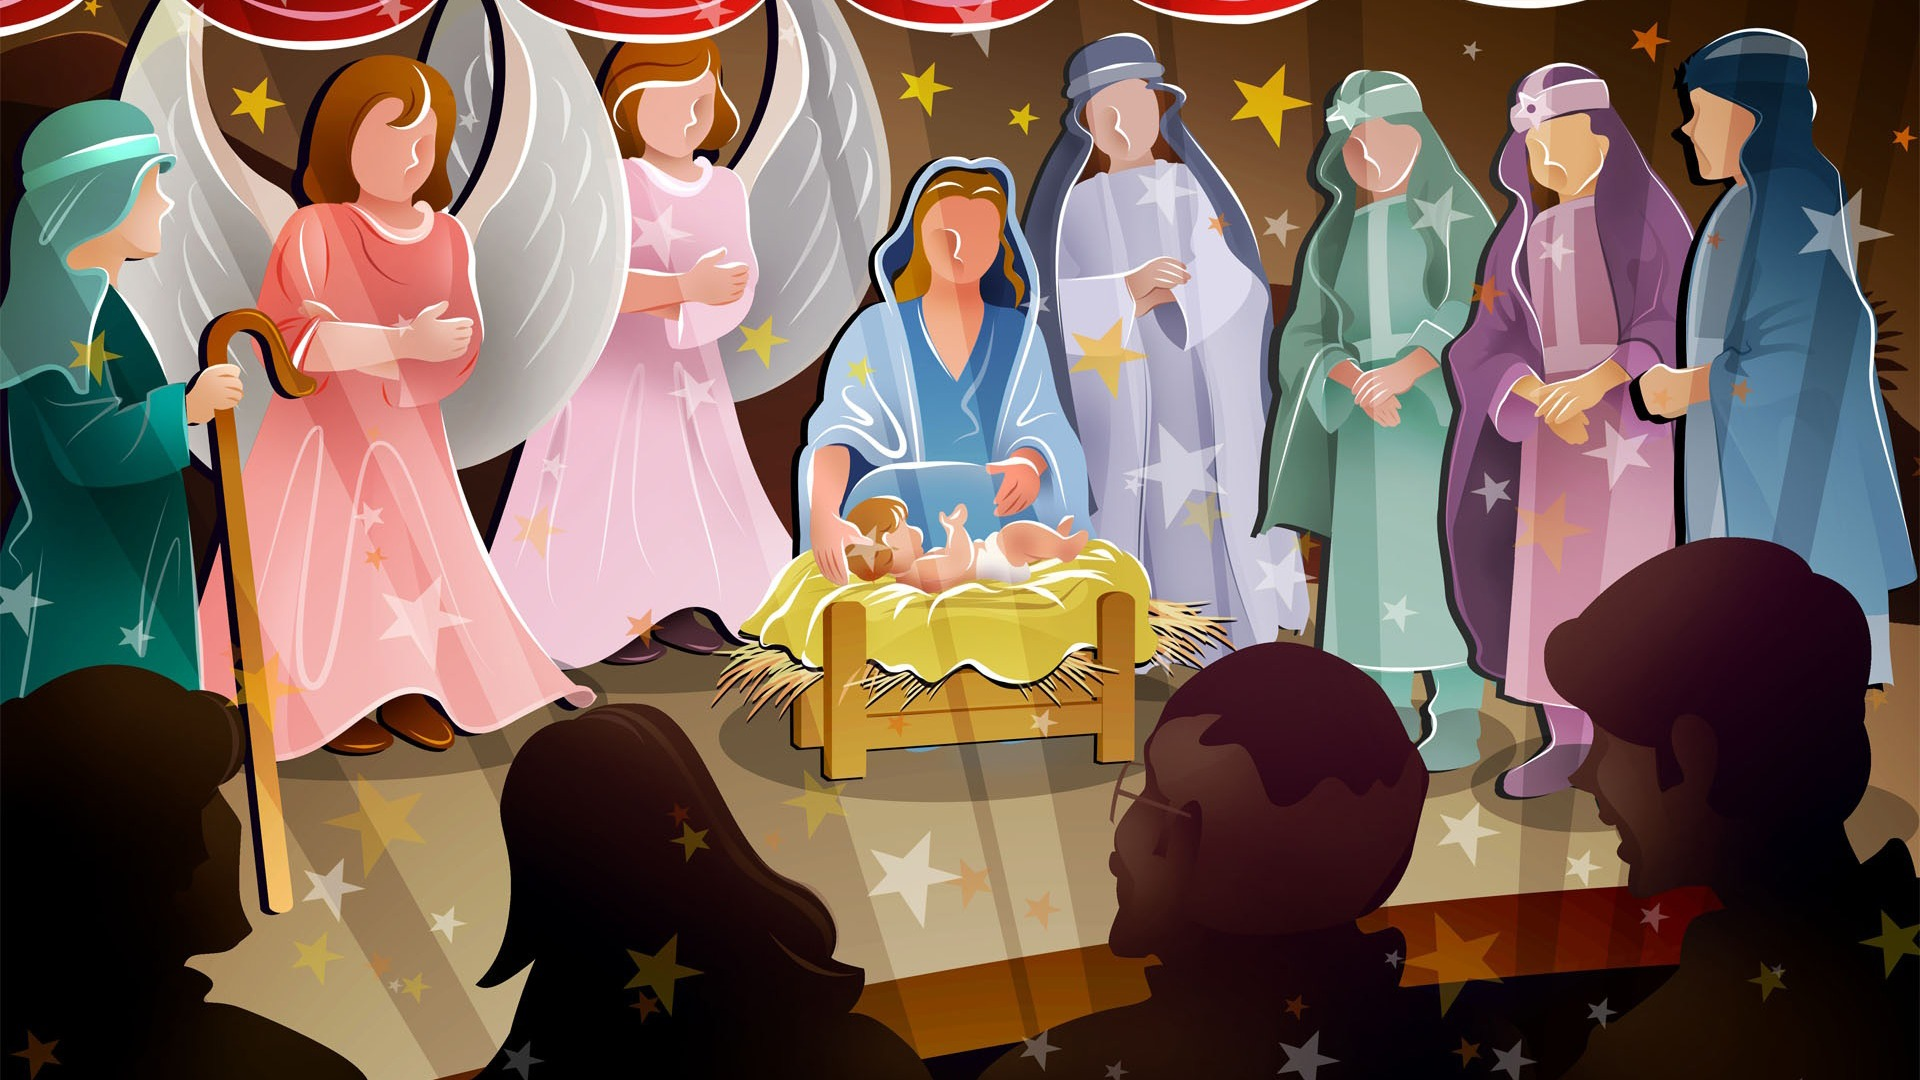 Birth of Jesus Christ image desktop wallpaper 1920x1080